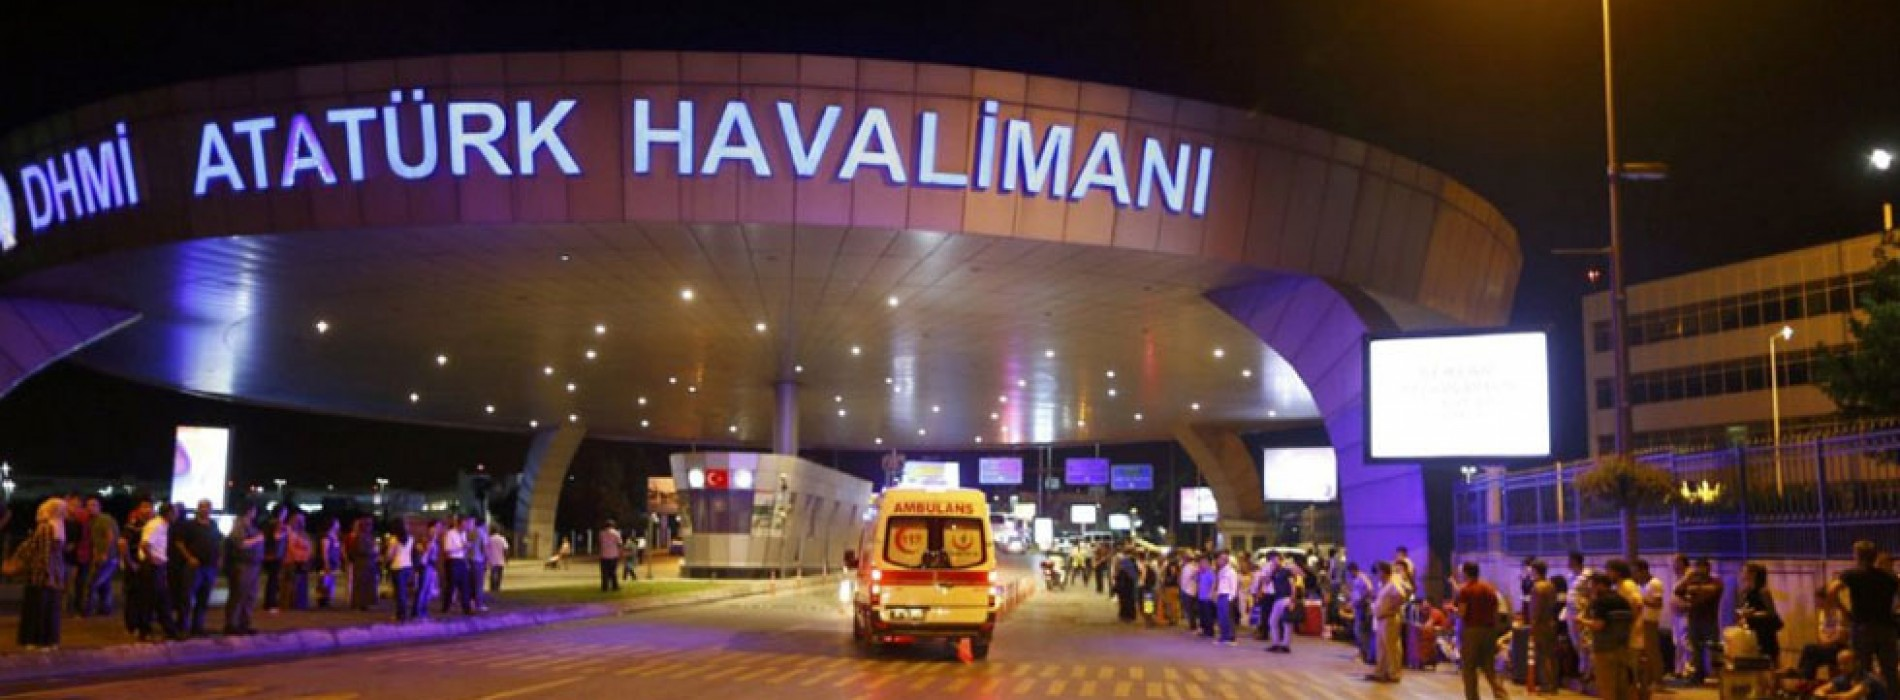 Istanbul Ataturk airport attack: 41 dead and 239 injured in 'hideous' suicide bombings in Turkey